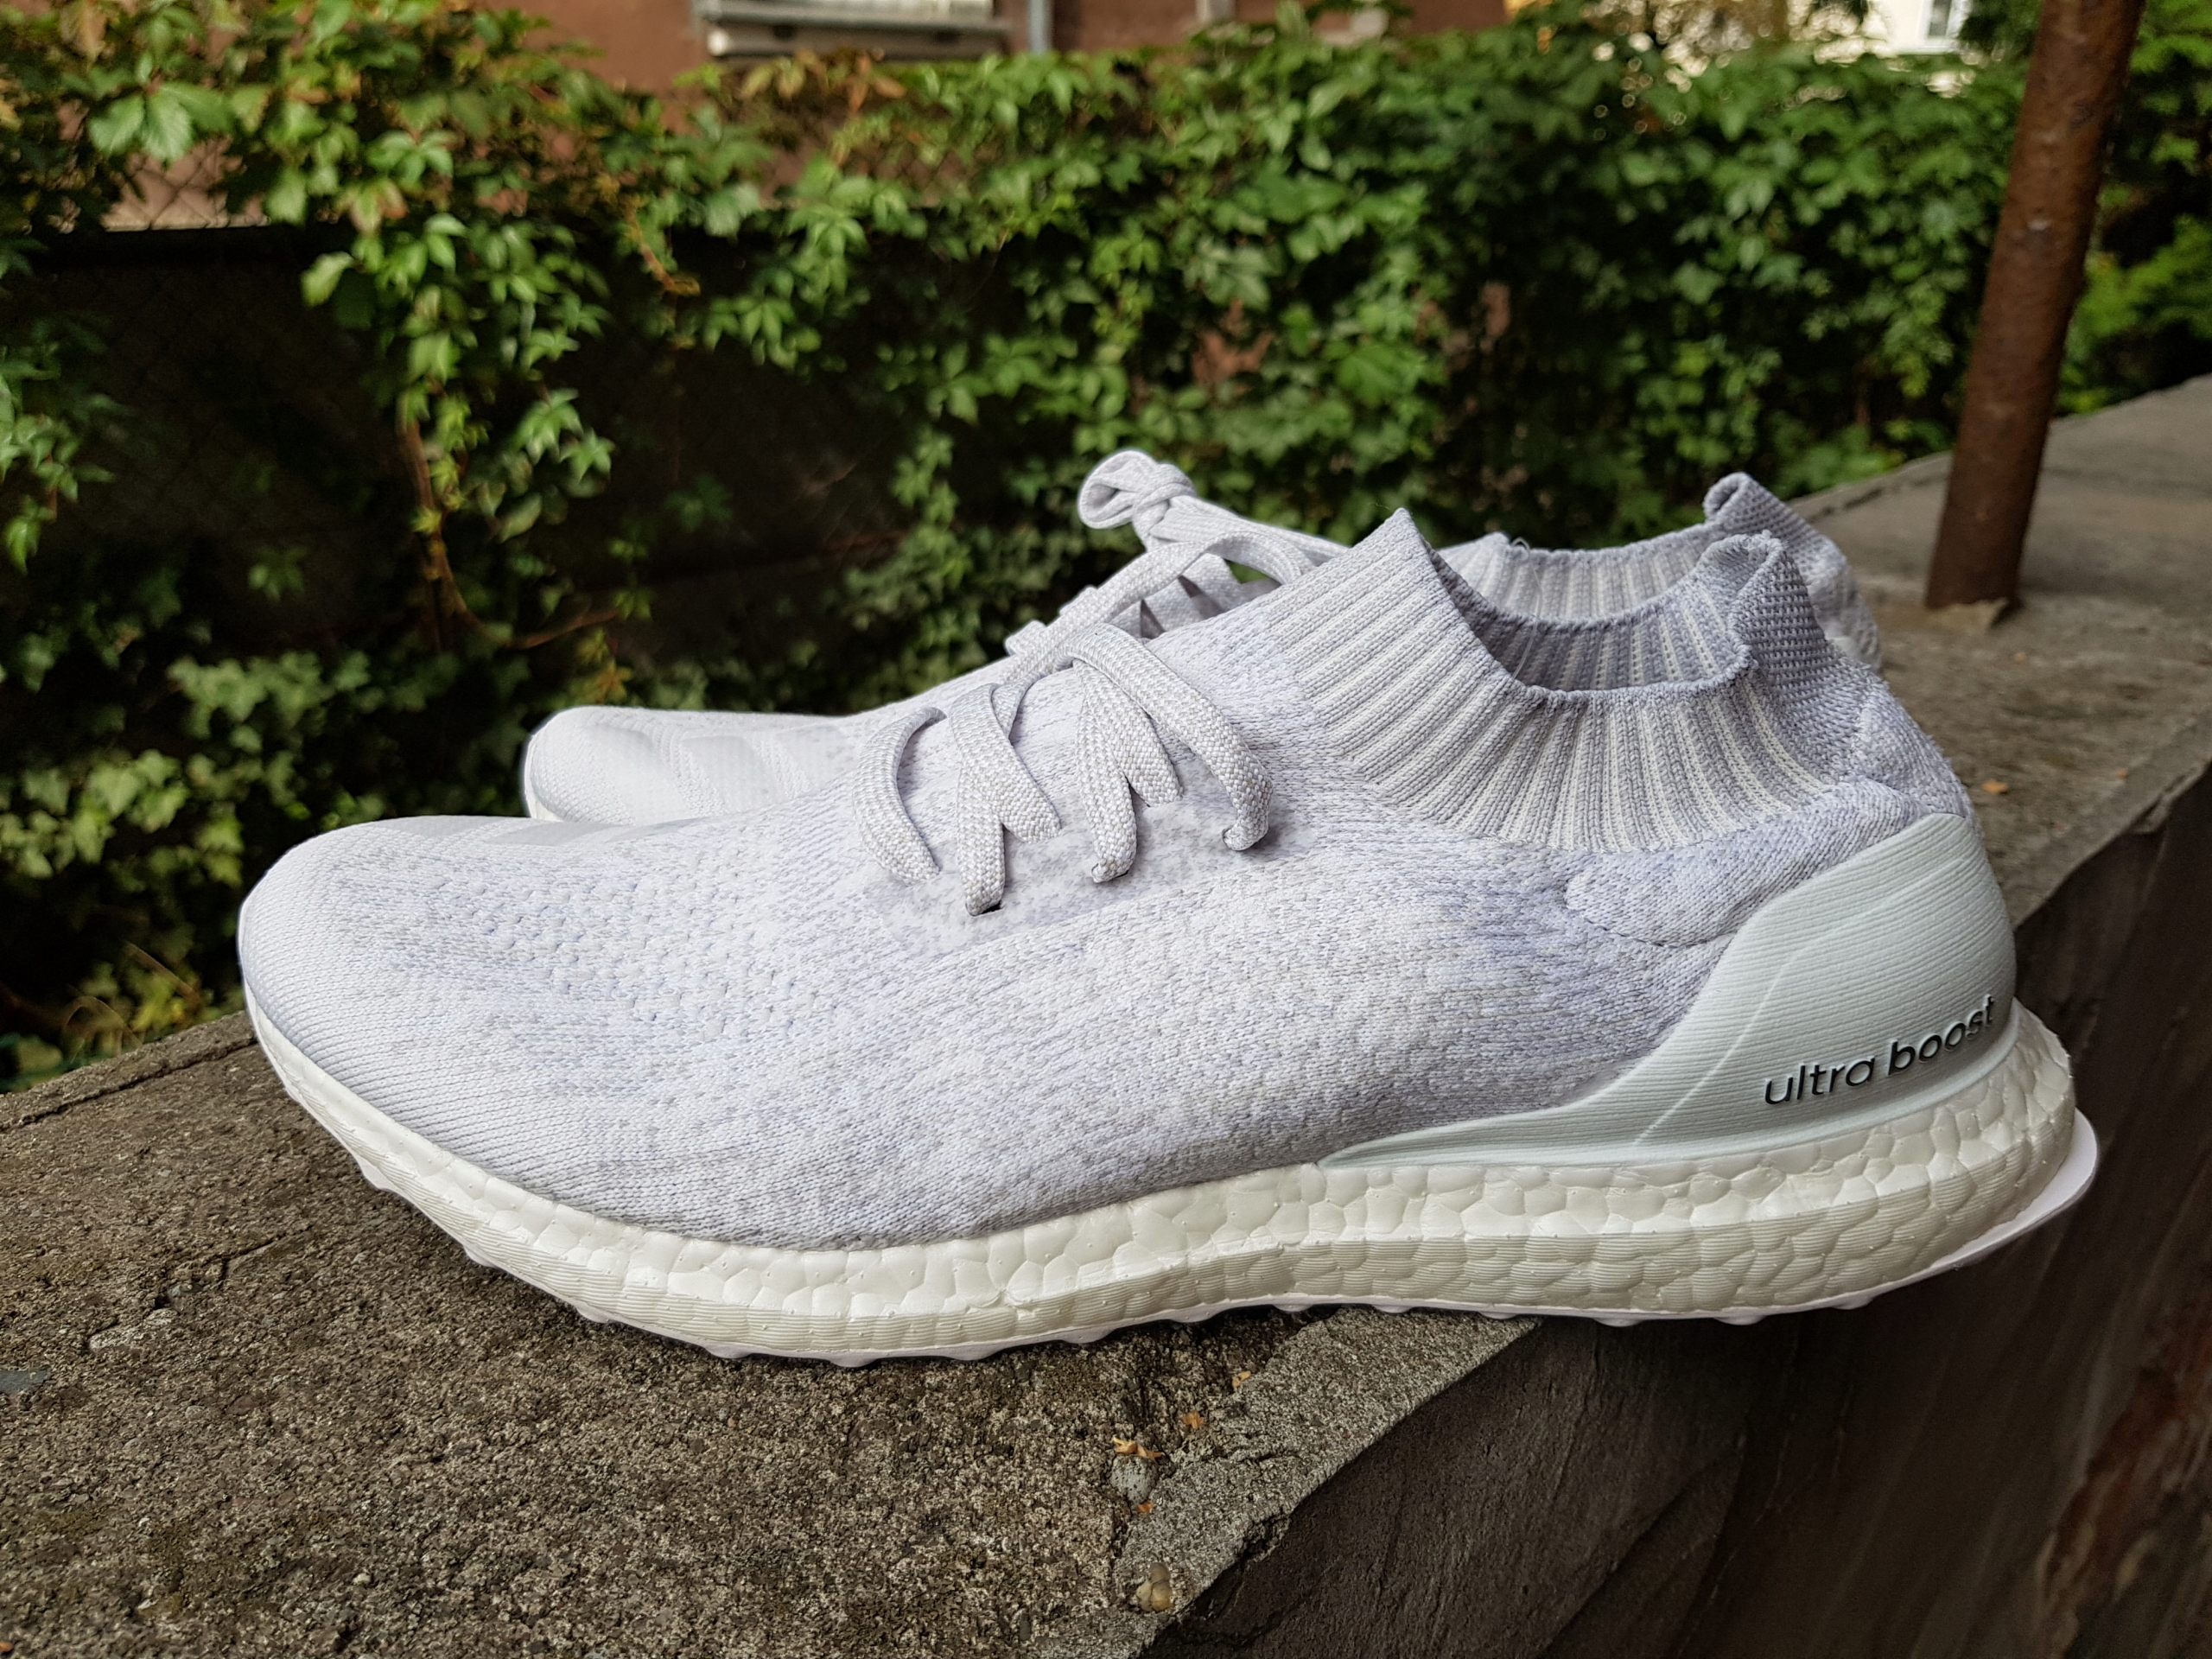 hot sales e757f 26ac9 Nowe Buty Adidas Ultra Boost Uncaged 44 28cm. nmd